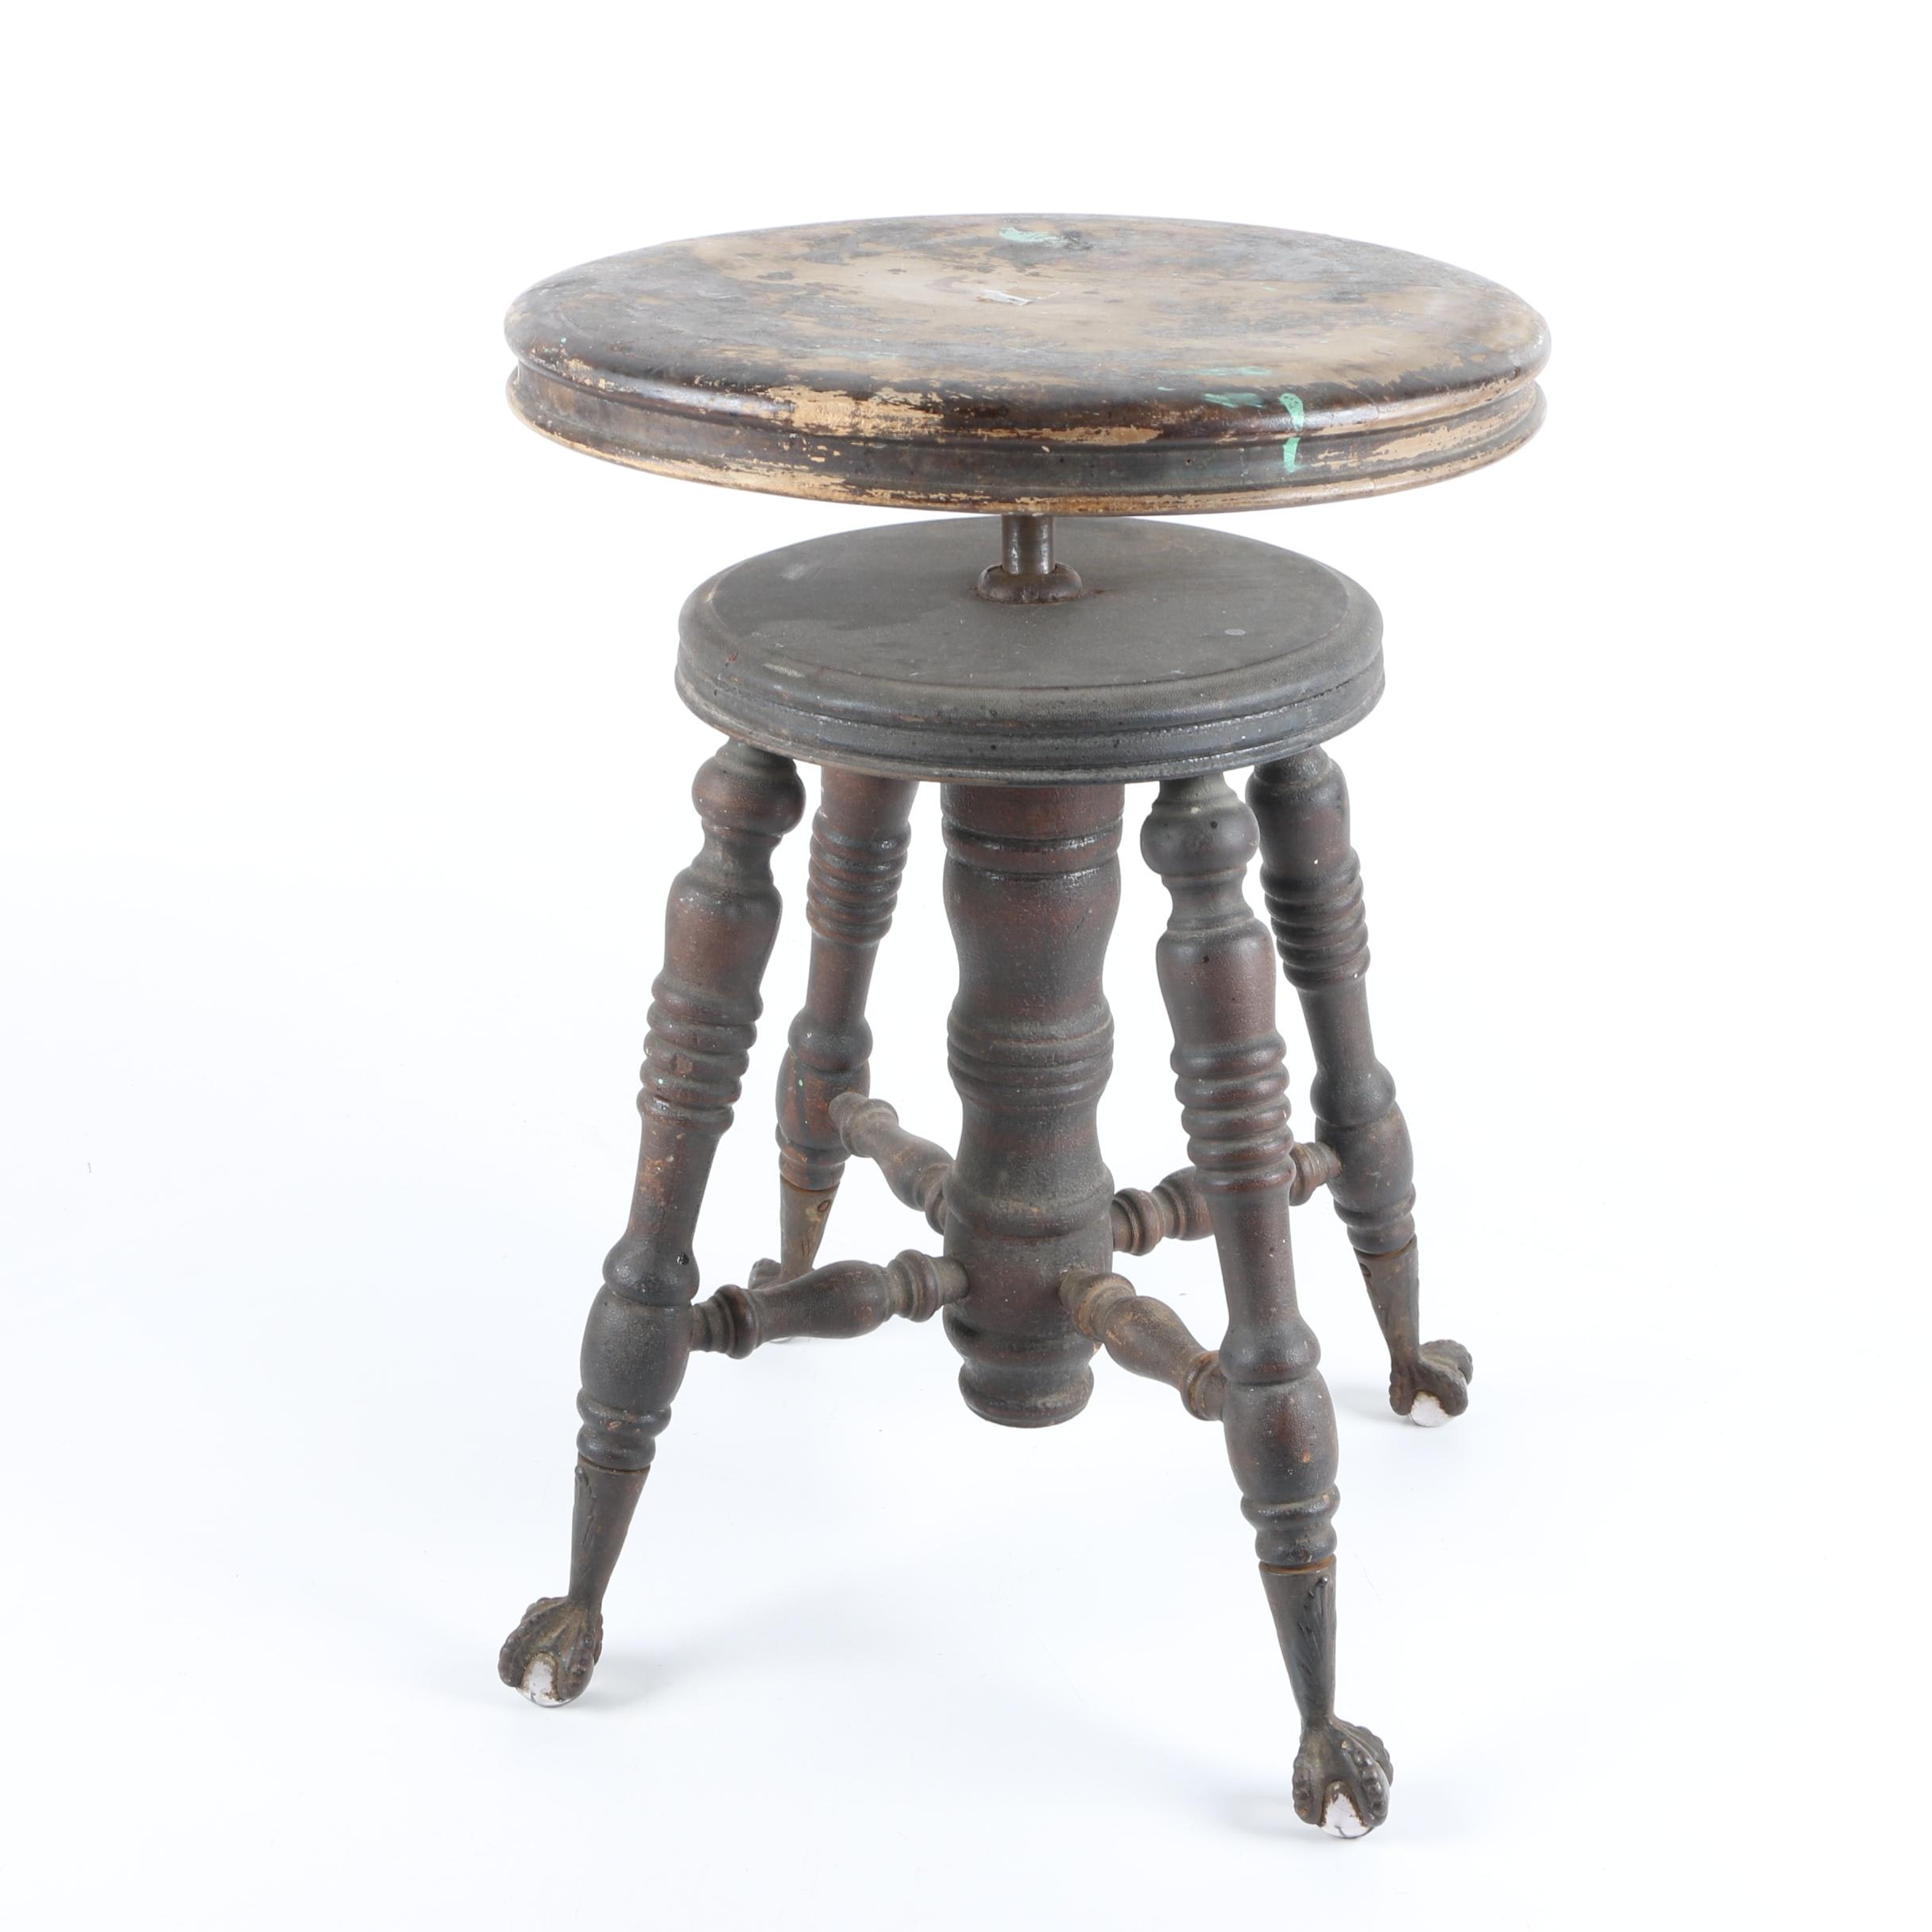 Antique Swivel Piano Stool with Glass Ball and Claw Feet